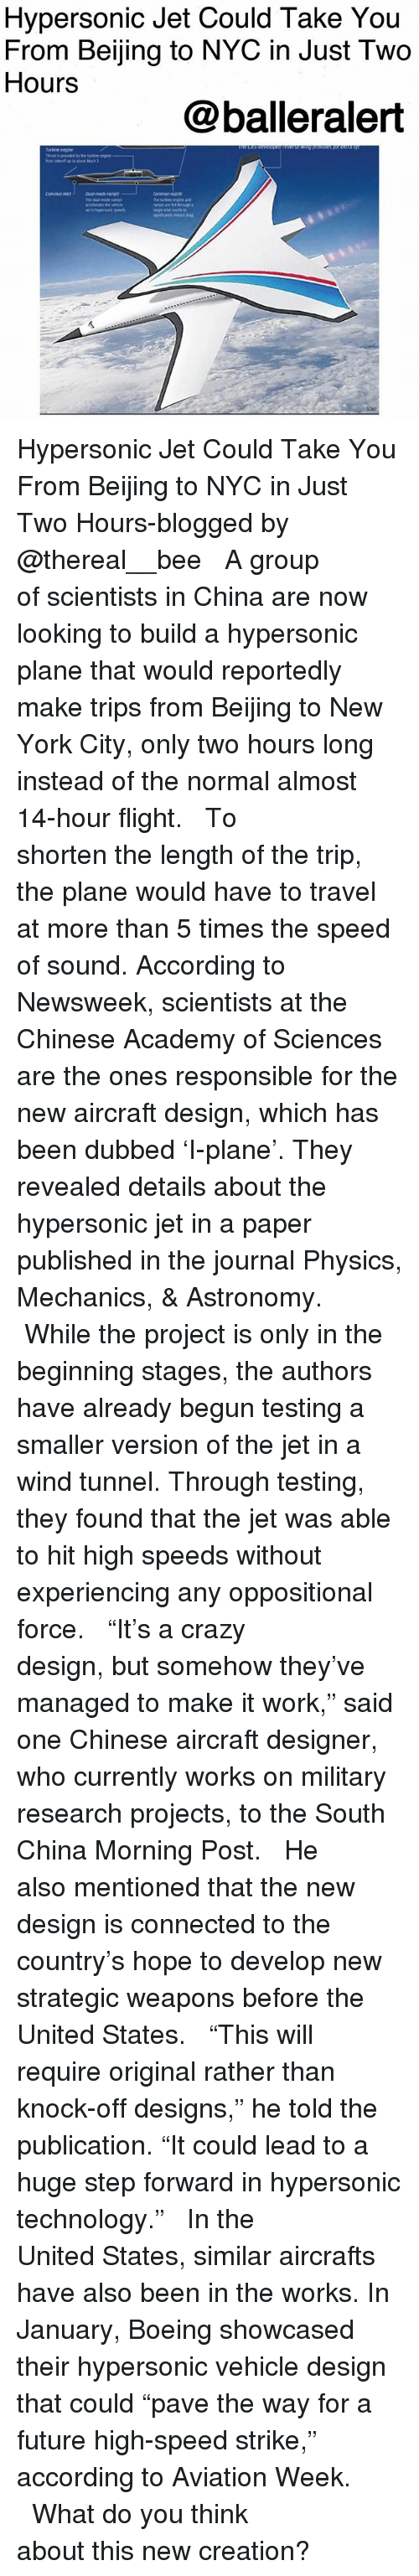 "Beijing: Hypersonic Jet Could Take You  From Beijing to NYC in Just Two  Hours  @balleralert Hypersonic Jet Could Take You From Beijing to NYC in Just Two Hours-blogged by @thereal__bee ⠀⠀⠀⠀⠀⠀⠀⠀⠀ ⠀⠀ A group of scientists in China are now looking to build a hypersonic plane that would reportedly make trips from Beijing to New York City, only two hours long instead of the normal almost 14-hour flight. ⠀⠀⠀⠀⠀⠀⠀⠀⠀ ⠀⠀ To shorten the length of the trip, the plane would have to travel at more than 5 times the speed of sound. According to Newsweek, scientists at the Chinese Academy of Sciences are the ones responsible for the new aircraft design, which has been dubbed 'I-plane'. They revealed details about the hypersonic jet in a paper published in the journal Physics, Mechanics, & Astronomy. ⠀⠀⠀⠀⠀⠀⠀⠀⠀ ⠀⠀ While the project is only in the beginning stages, the authors have already begun testing a smaller version of the jet in a wind tunnel. Through testing, they found that the jet was able to hit high speeds without experiencing any oppositional force. ⠀⠀⠀⠀⠀⠀⠀⠀⠀ ⠀⠀ ""It's a crazy design, but somehow they've managed to make it work,"" said one Chinese aircraft designer, who currently works on military research projects, to the South China Morning Post. ⠀⠀⠀⠀⠀⠀⠀⠀⠀ ⠀⠀ He also mentioned that the new design is connected to the country's hope to develop new strategic weapons before the United States. ⠀⠀⠀⠀⠀⠀⠀⠀⠀ ⠀⠀ ""This will require original rather than knock-off designs,"" he told the publication. ""It could lead to a huge step forward in hypersonic technology."" ⠀⠀⠀⠀⠀⠀⠀⠀⠀ ⠀⠀ In the United States, similar aircrafts have also been in the works. In January, Boeing showcased their hypersonic vehicle design that could ""pave the way for a future high-speed strike,"" according to Aviation Week. ⠀⠀⠀⠀⠀⠀⠀⠀⠀ ⠀⠀ What do you think about this new creation?"